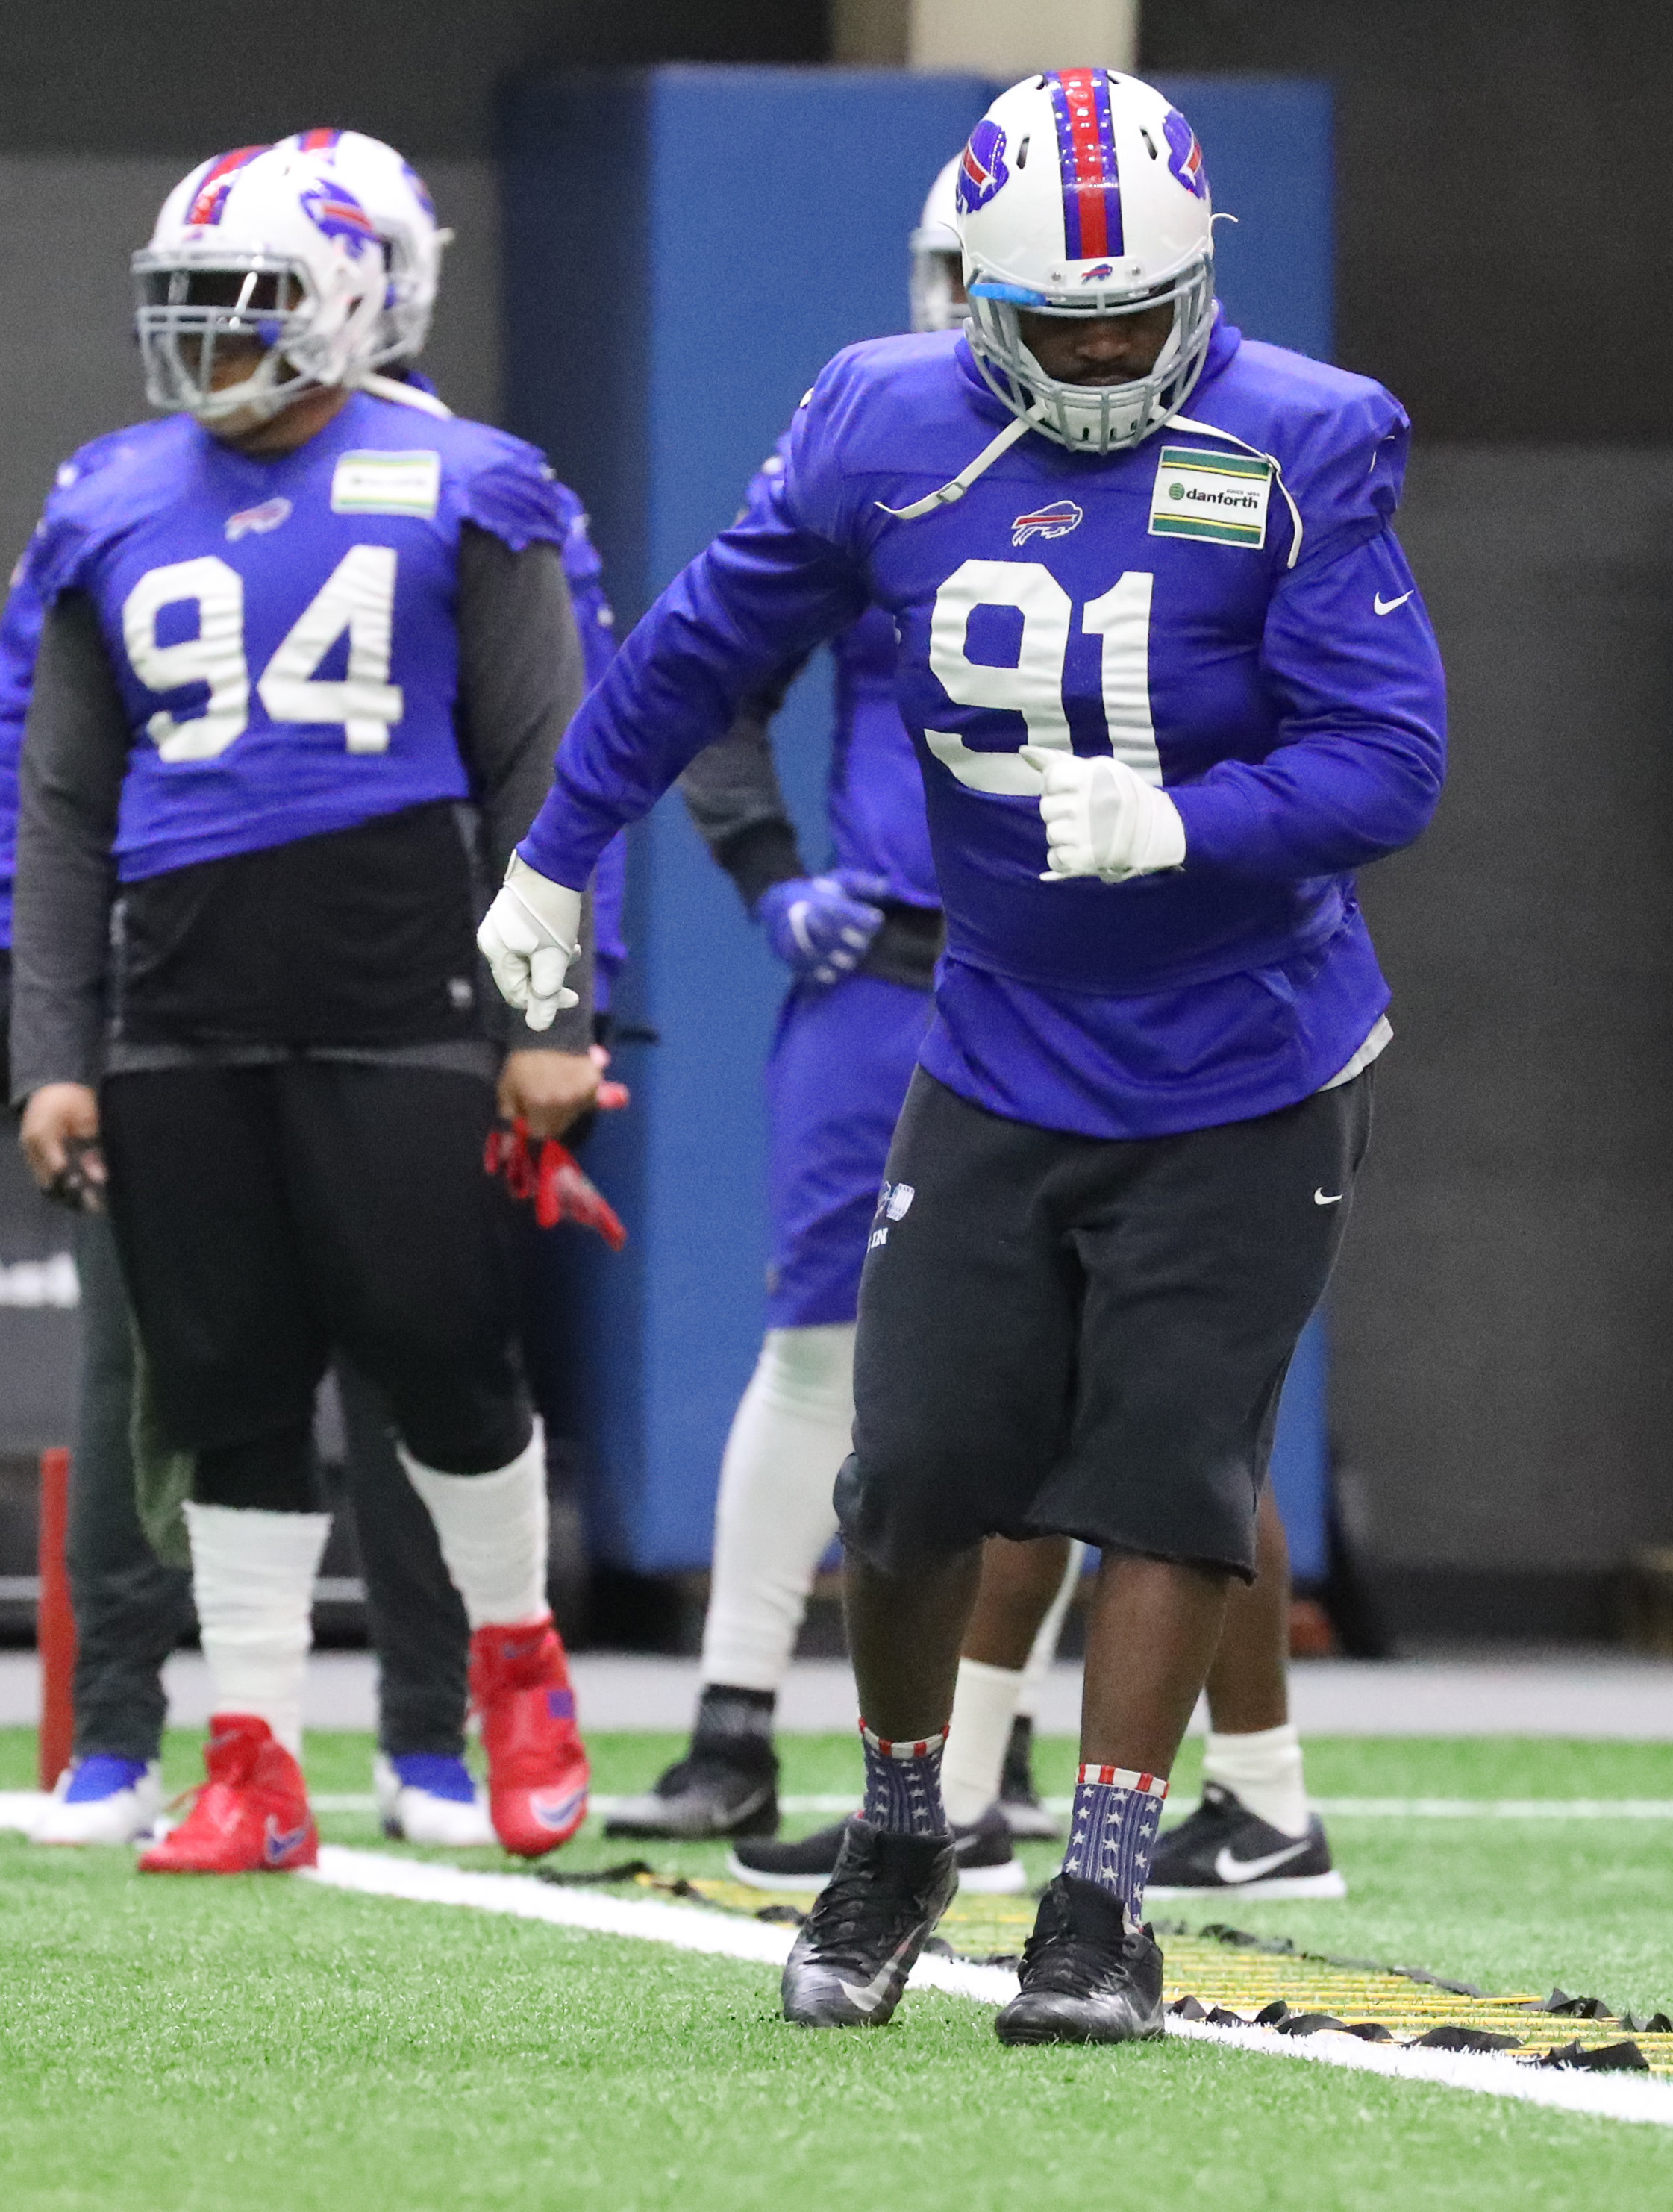 Former Bills defensive end Leger Douzable, right, reportedly was one of three free-agent defensive linemen making a free-agent visit to the team Monday. (James P. McCoy/Buffalo News)